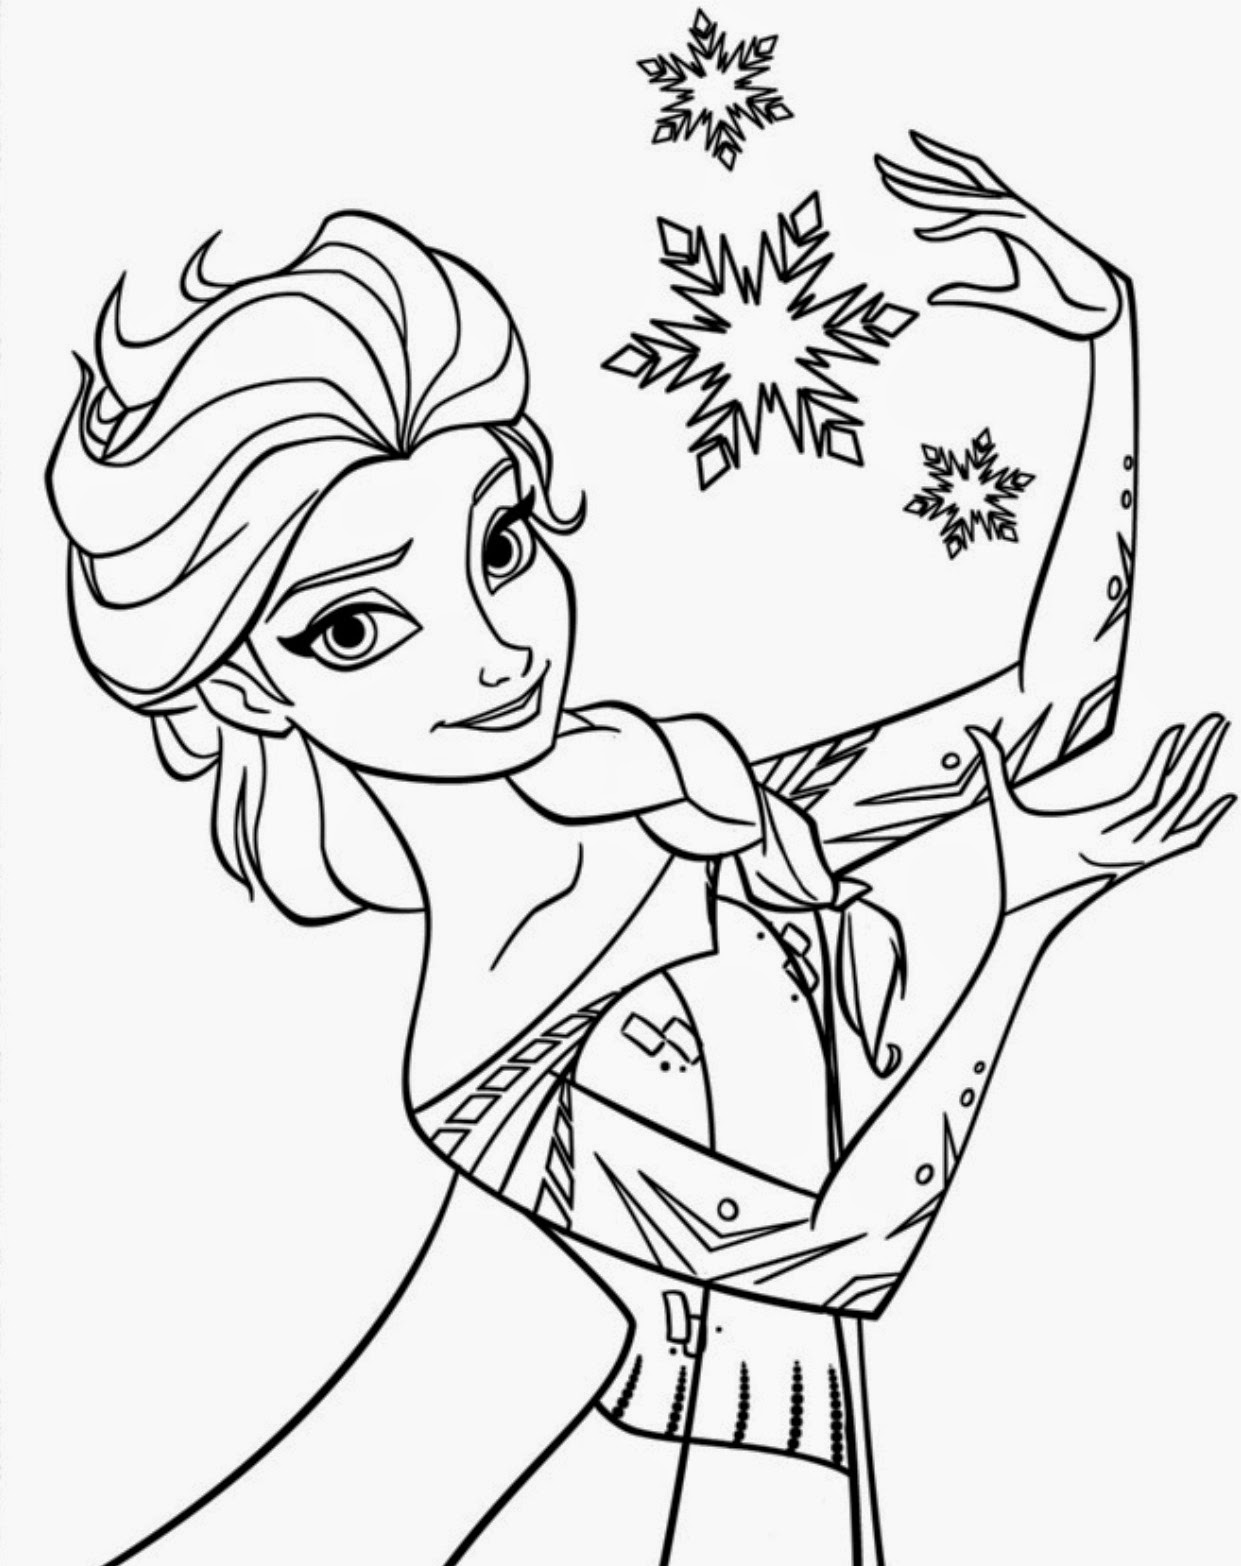 frozen movie coloring pages new frozen 2 coloring pages with elsa youloveitcom movie coloring frozen pages